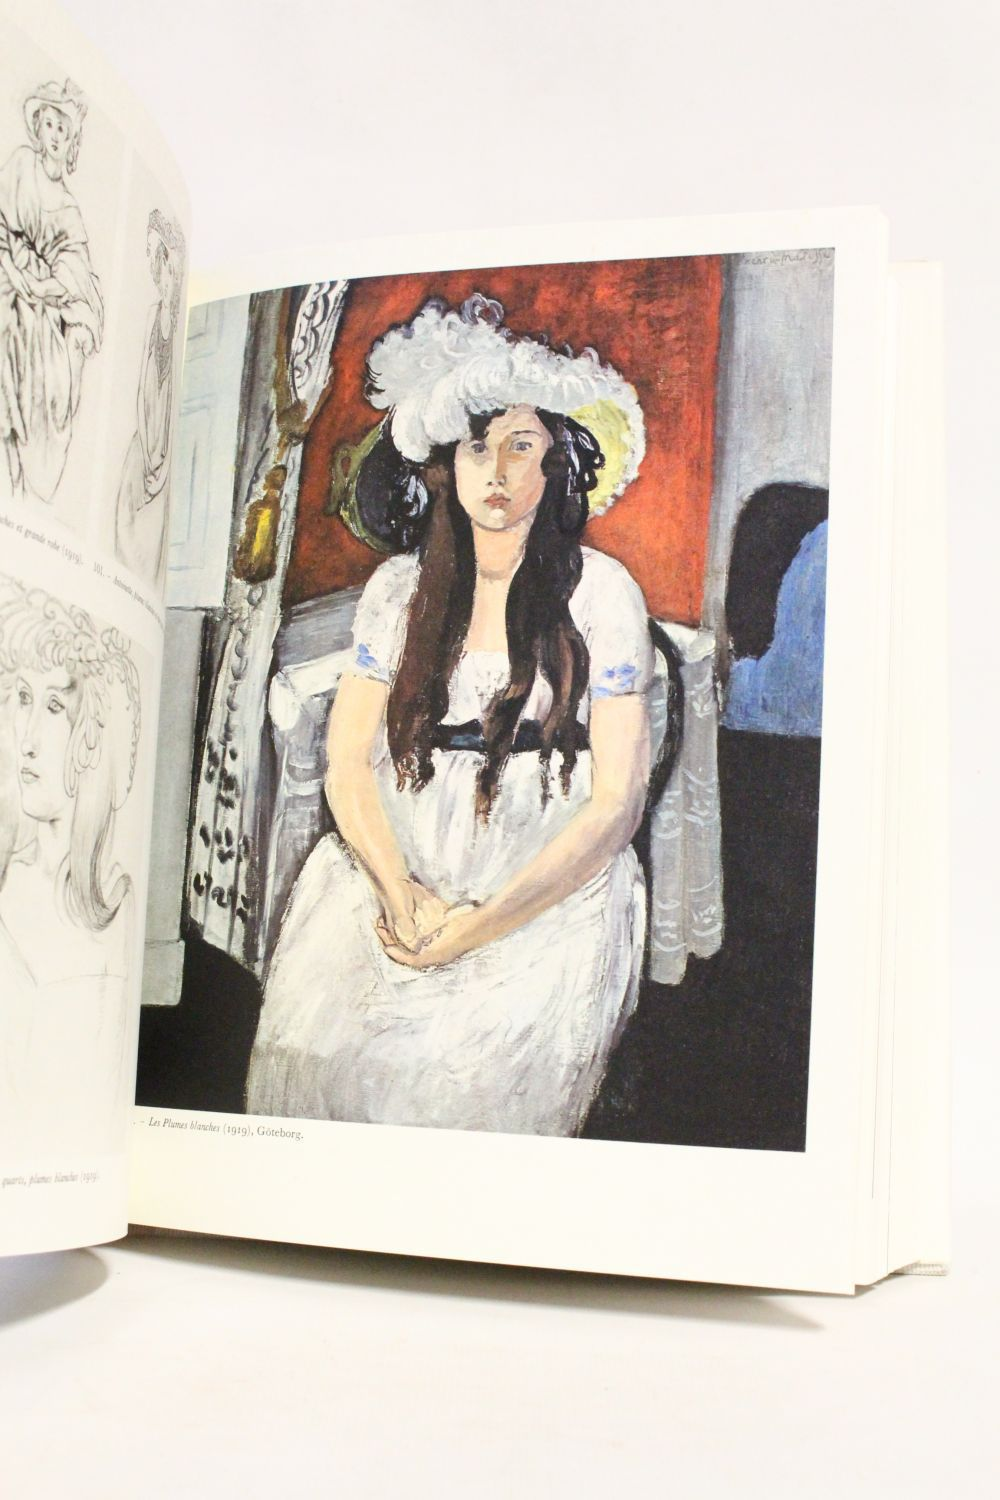 """HM Roman page 545 """"Les plumes blanches"""" 1919, Goteborg, Konstmuseum"""